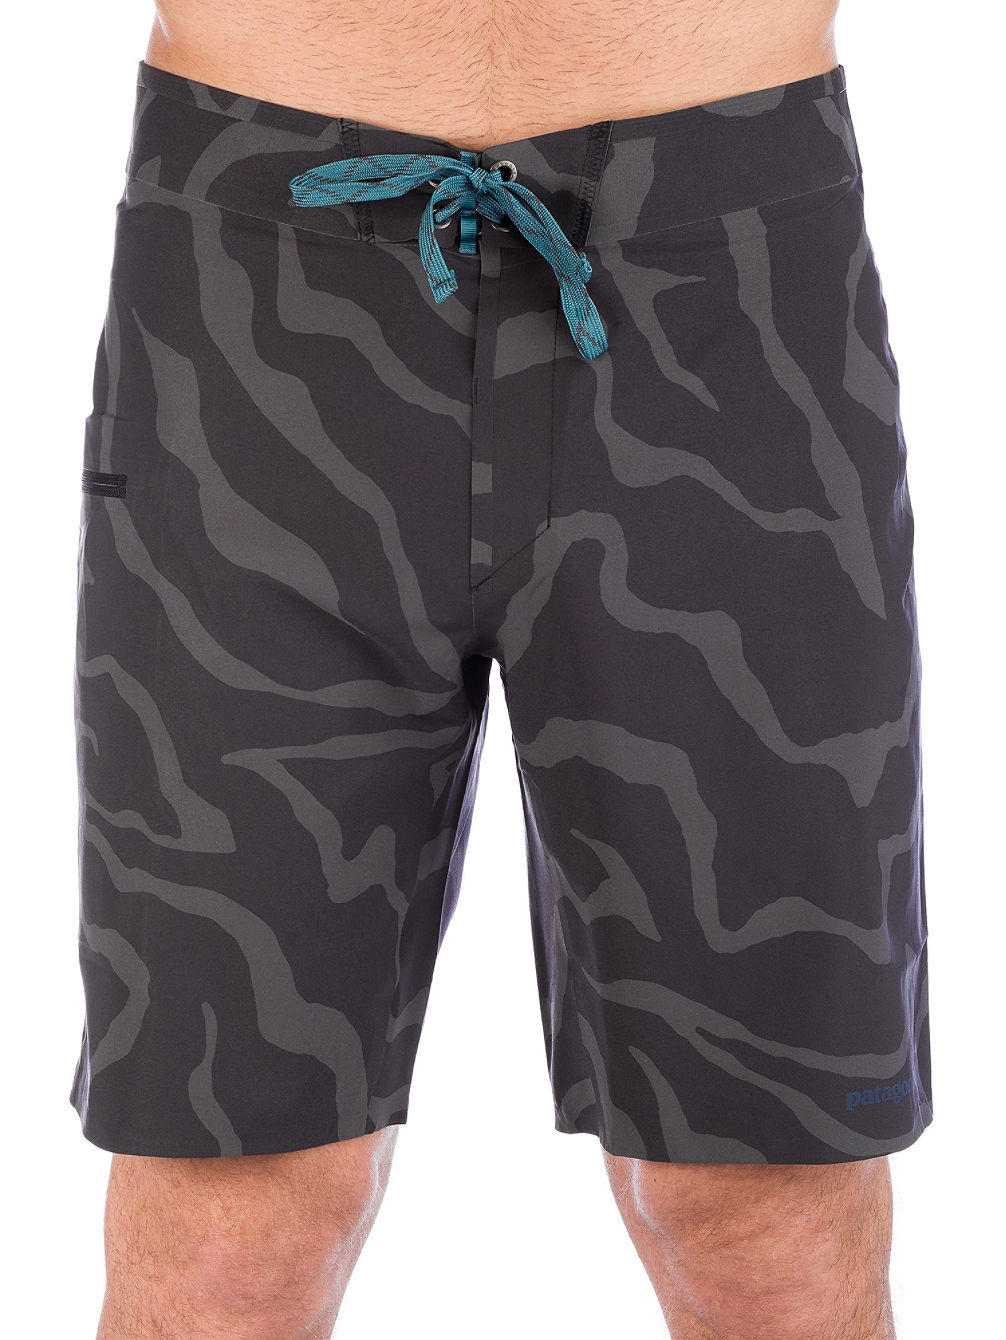 Stretch Hydroflow 19'' Boardshorts